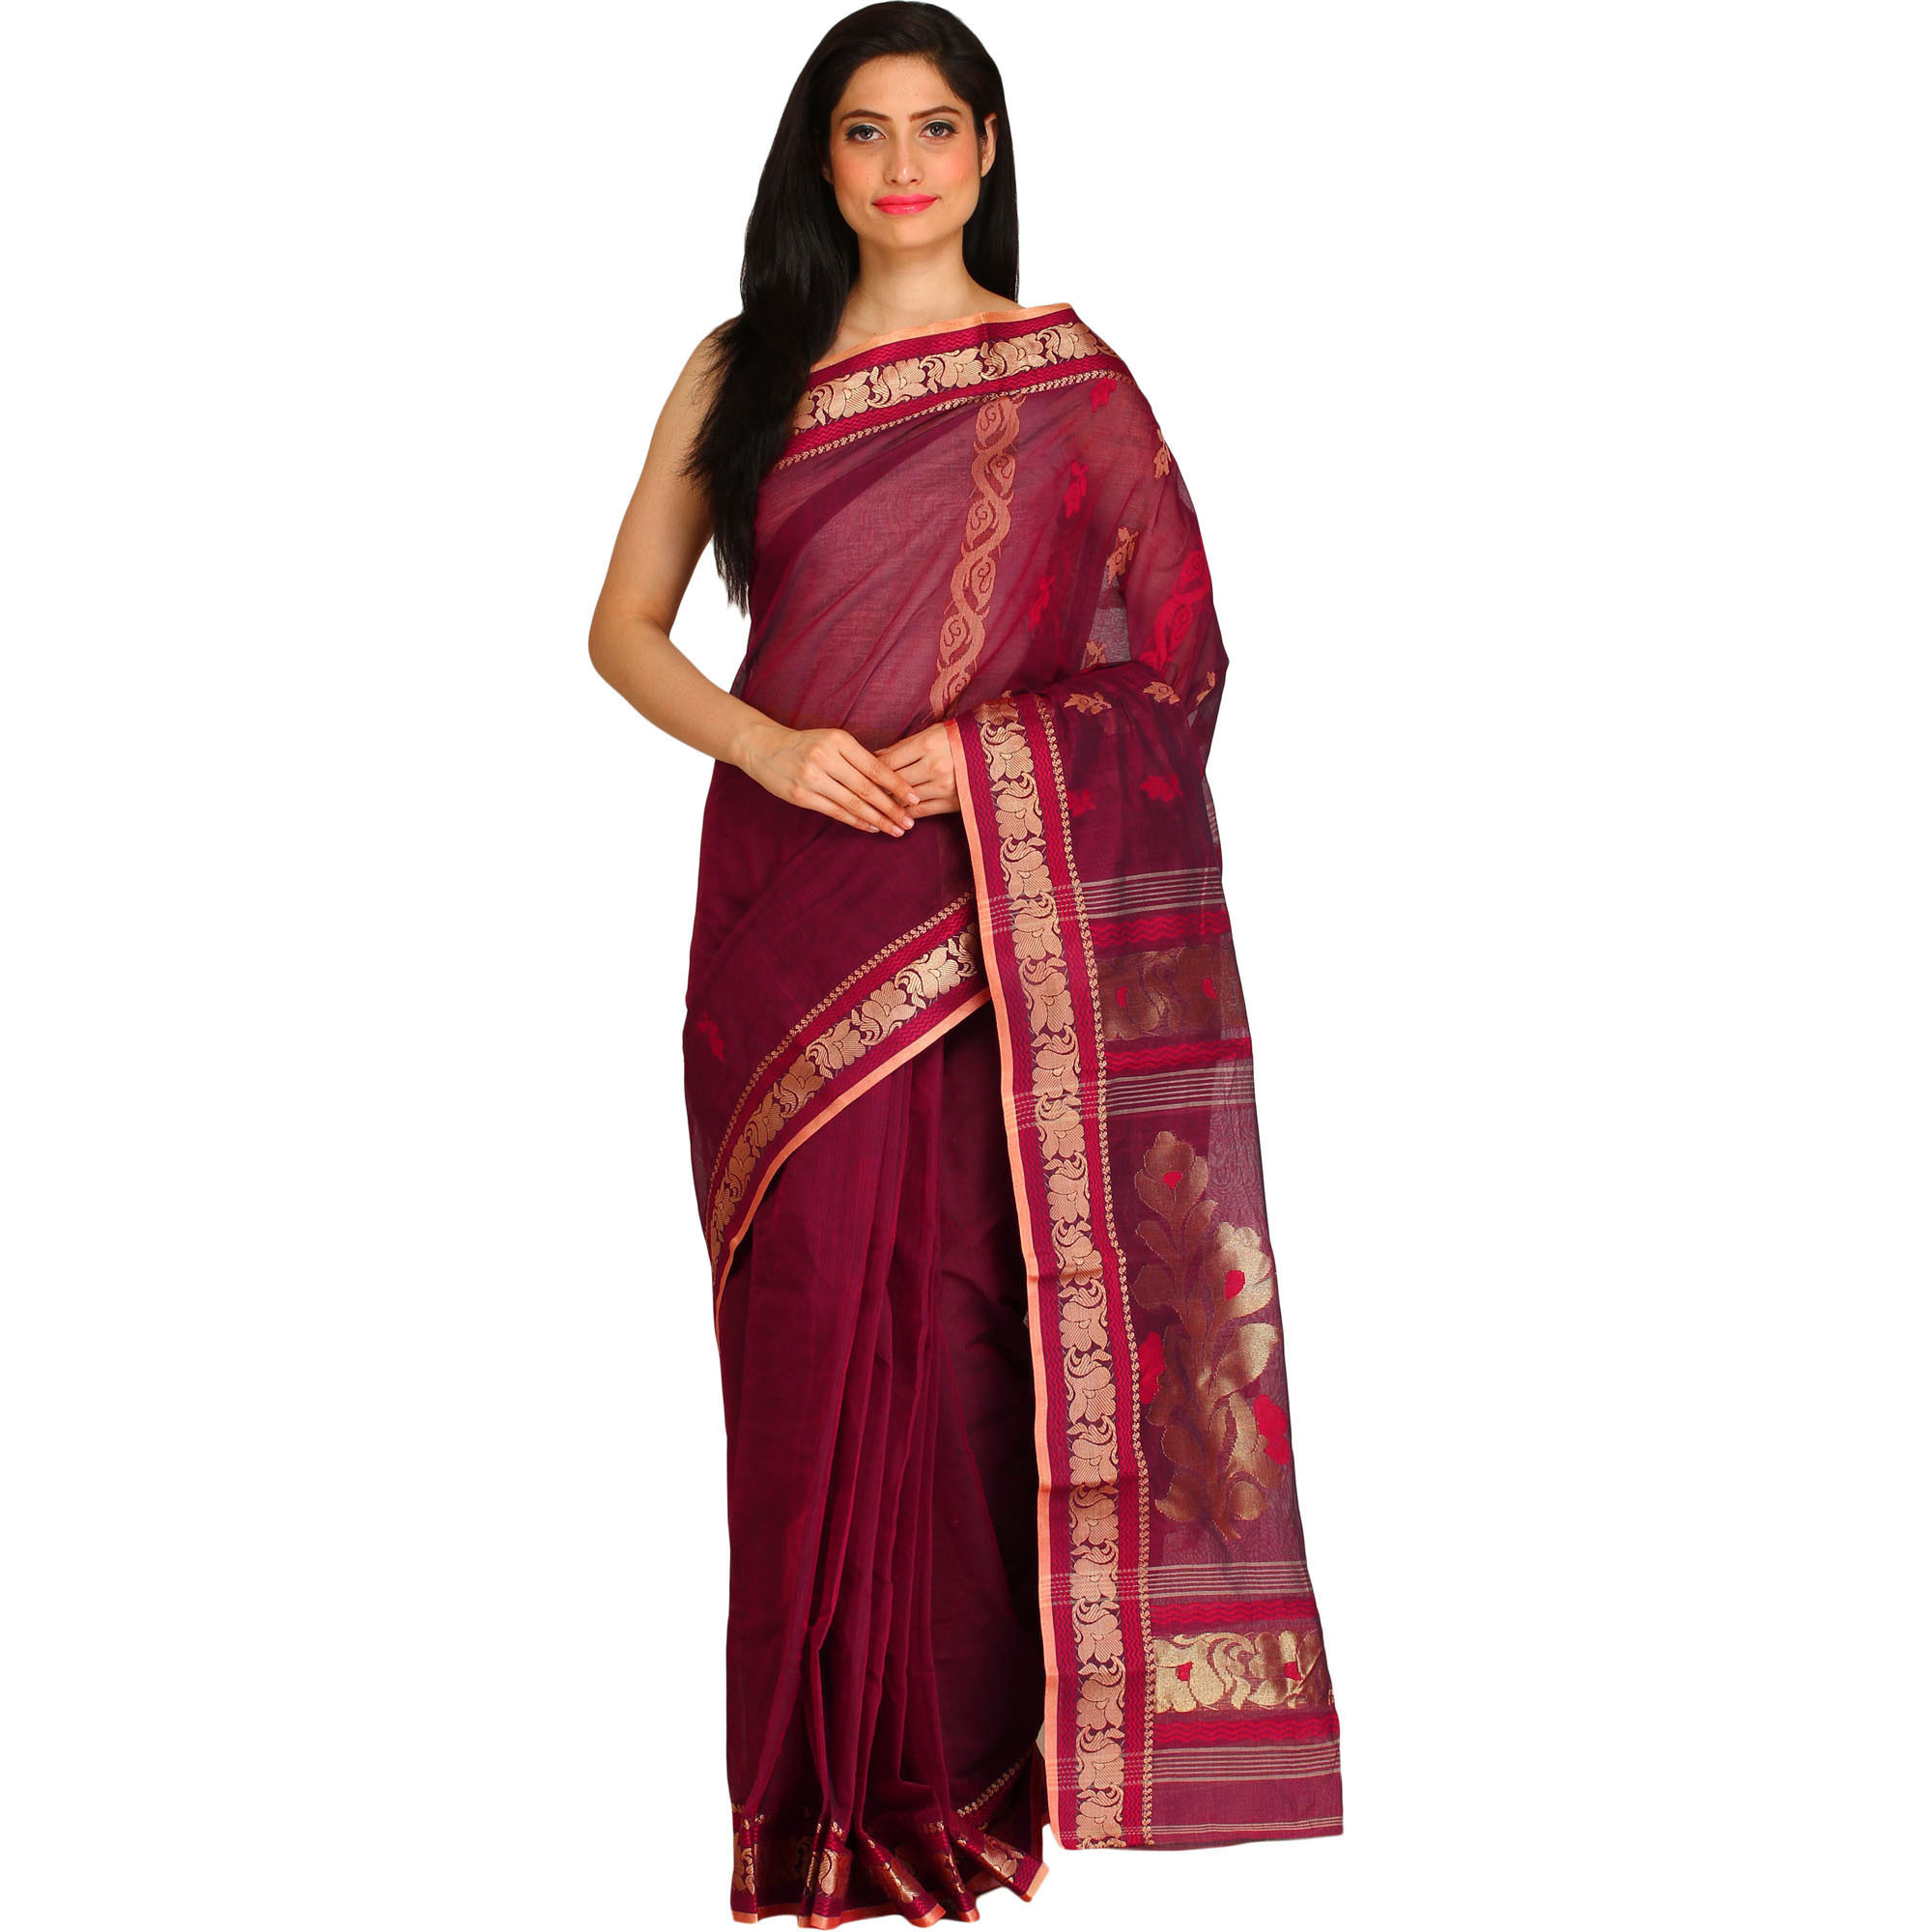 Mauve-Wine Purbasthali Tangail Sari from Bengal with Floral Woven Border and Pallu